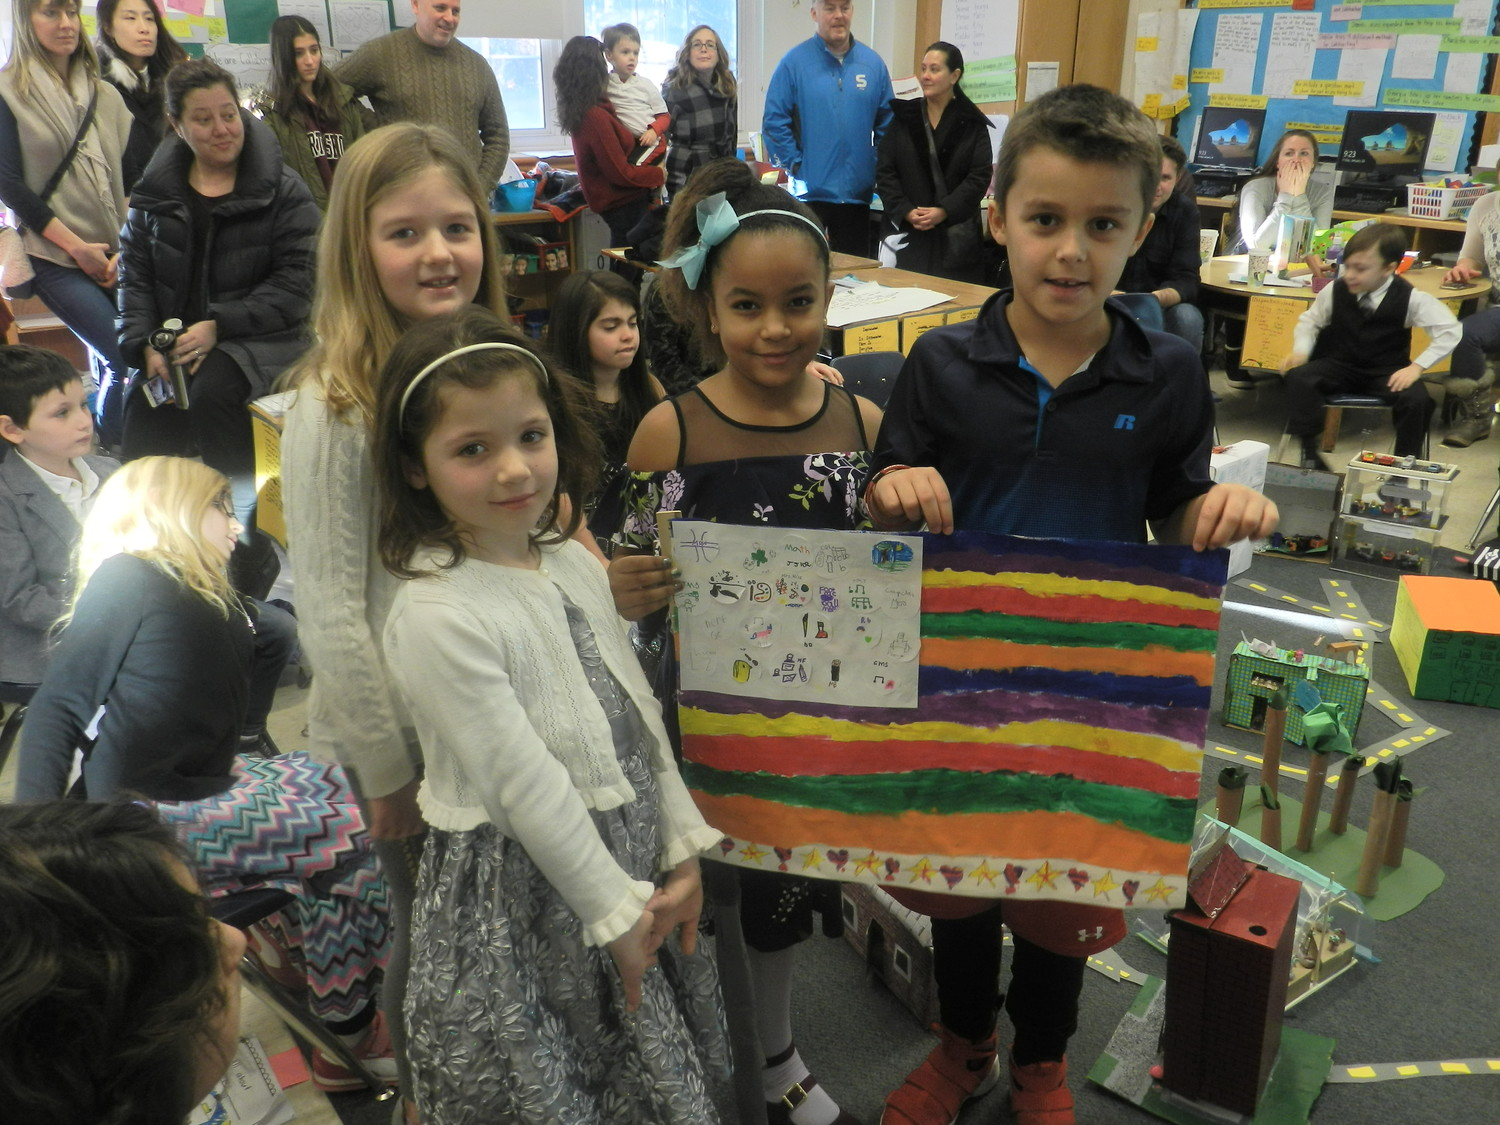 From left: Megan Matthews, Georgia Deegan, Jasenia John and Marco Camps worked together to create a flag for their community.